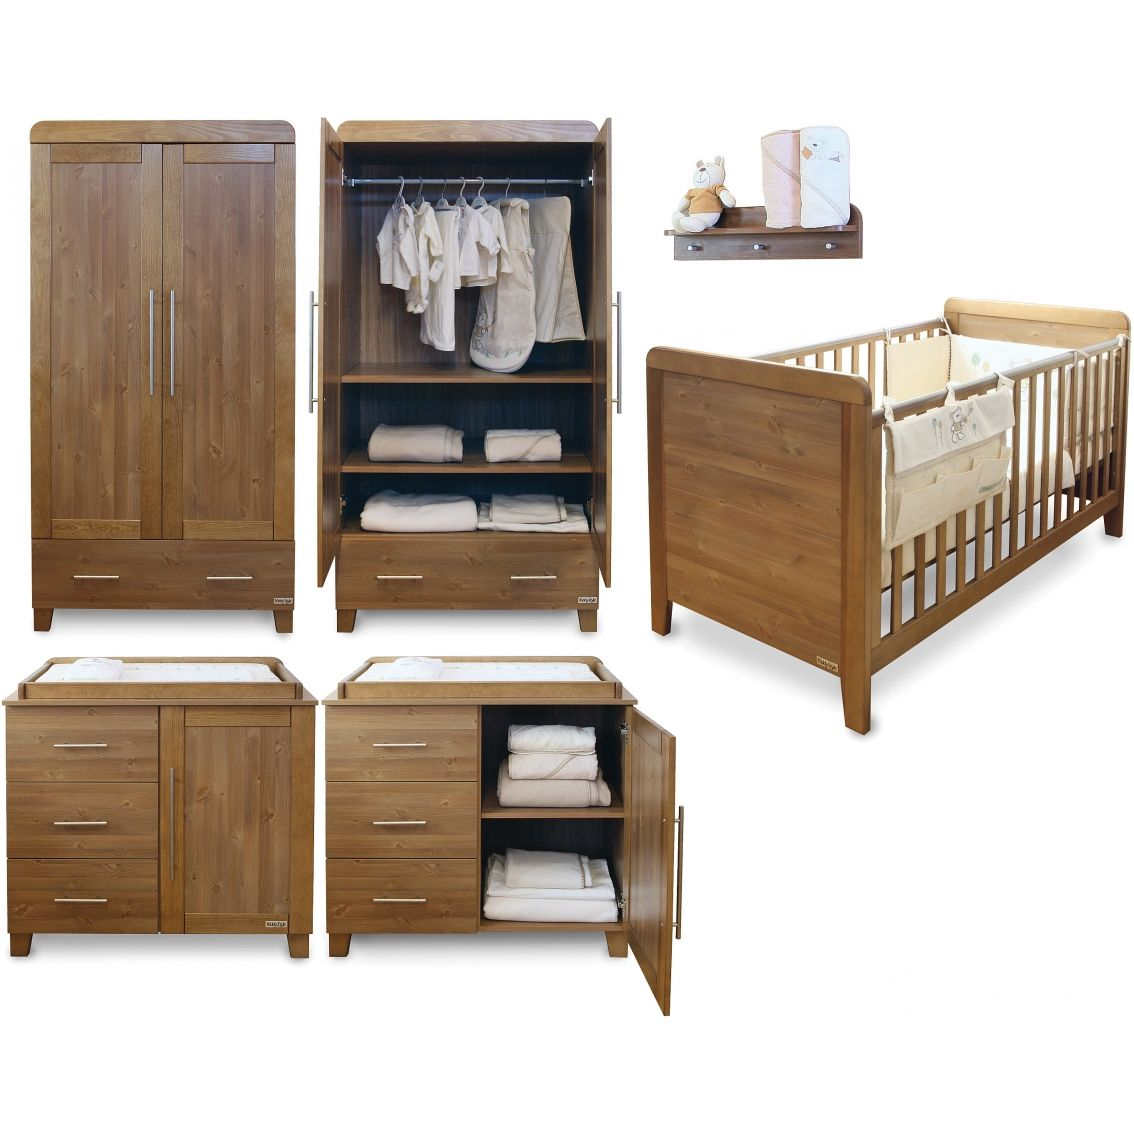 Nursery furniture collections uk interior design styles for Baby furniture